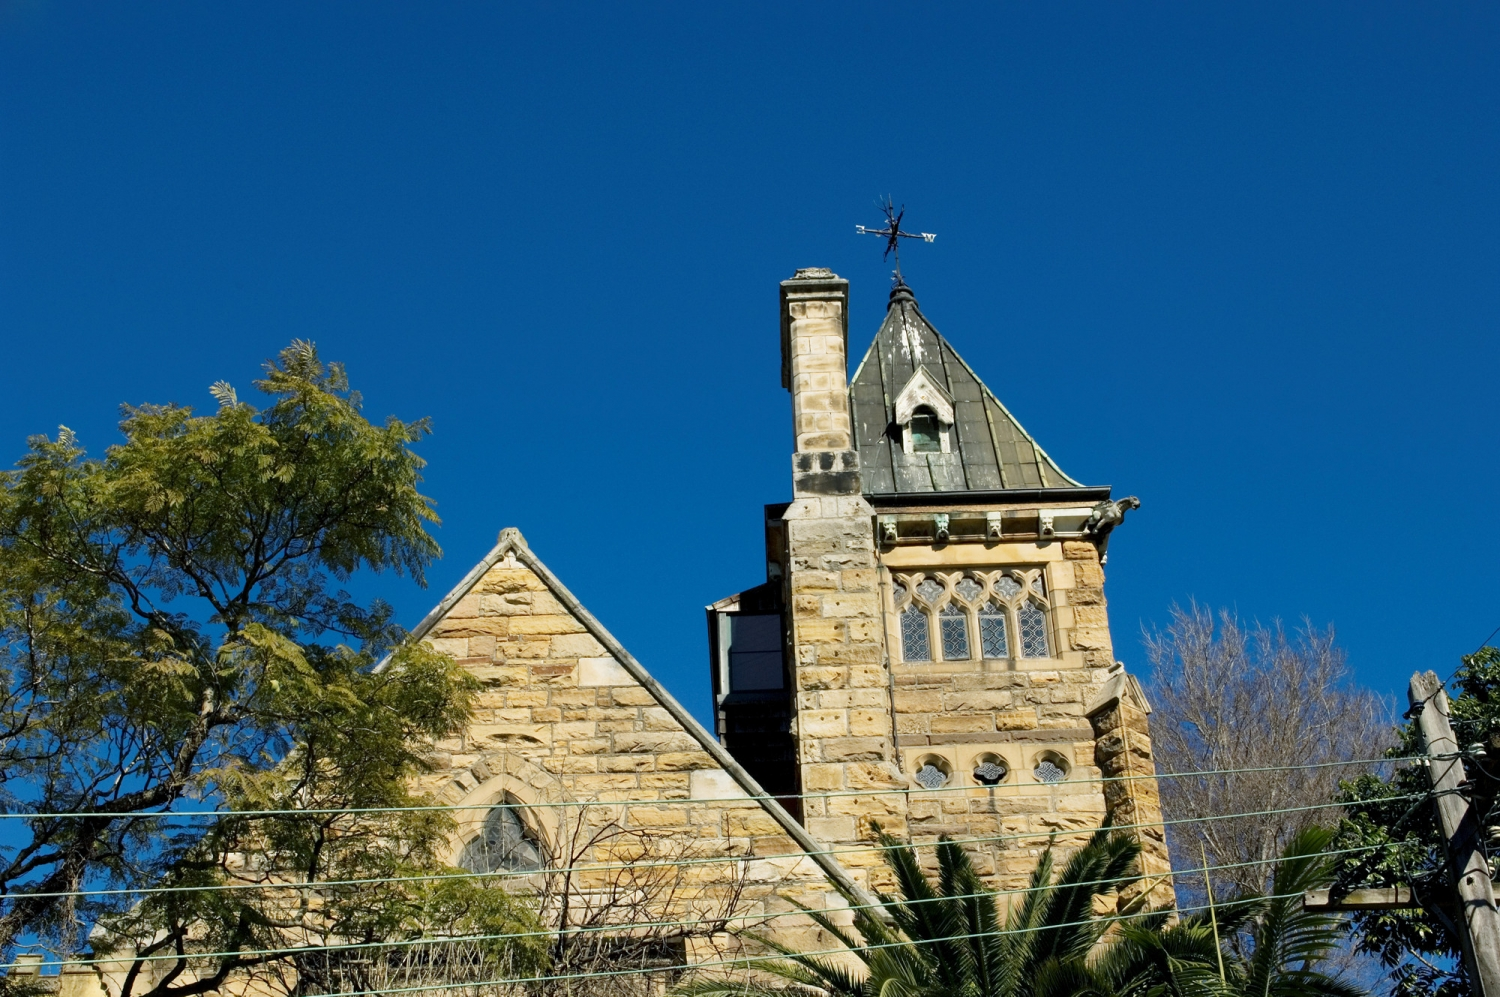 Exterior view of the Abbey, a private residence in Annandale, NSW.